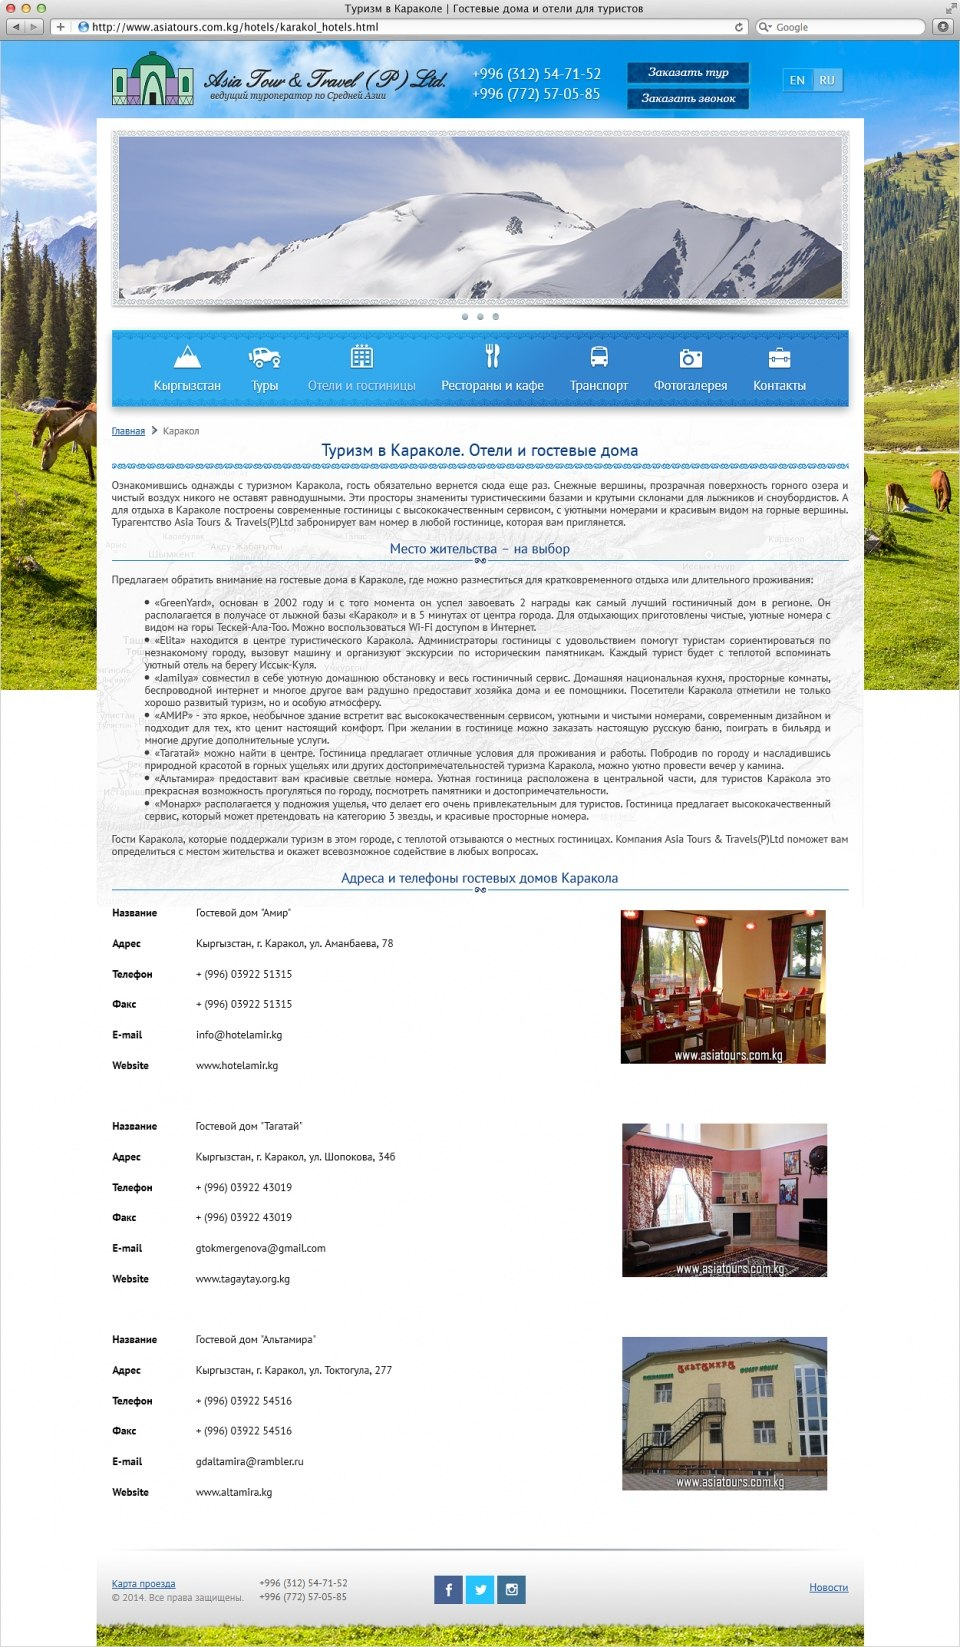 Сайт компании Asia Tours & Travels(P)Ltd 3